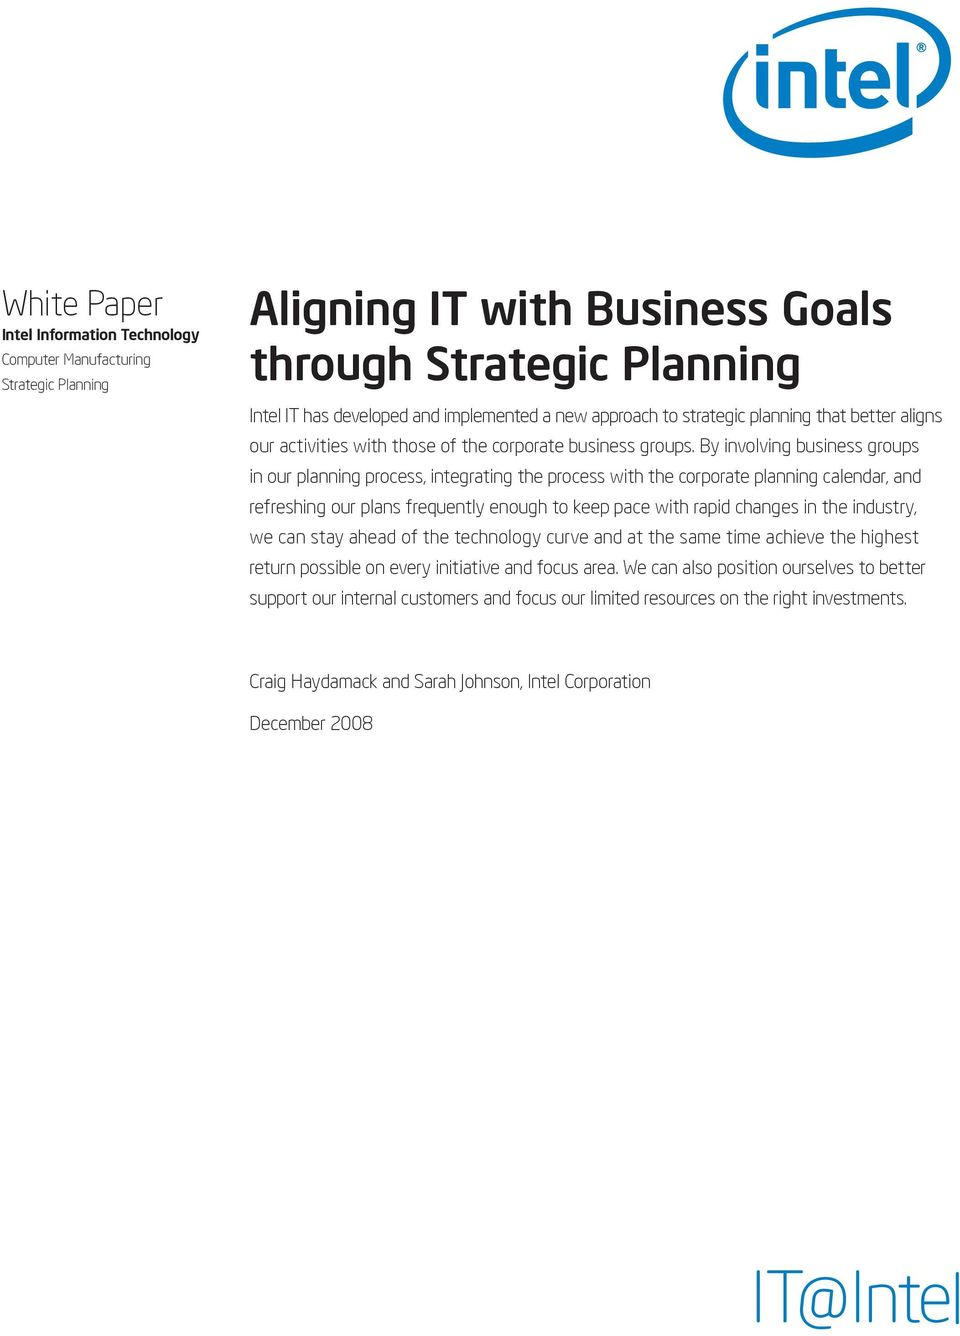 By involving business groups in our planning process, integrating the process with the corporate planning calendar, and refreshing our plans frequently enough to keep pace with rapid changes in the